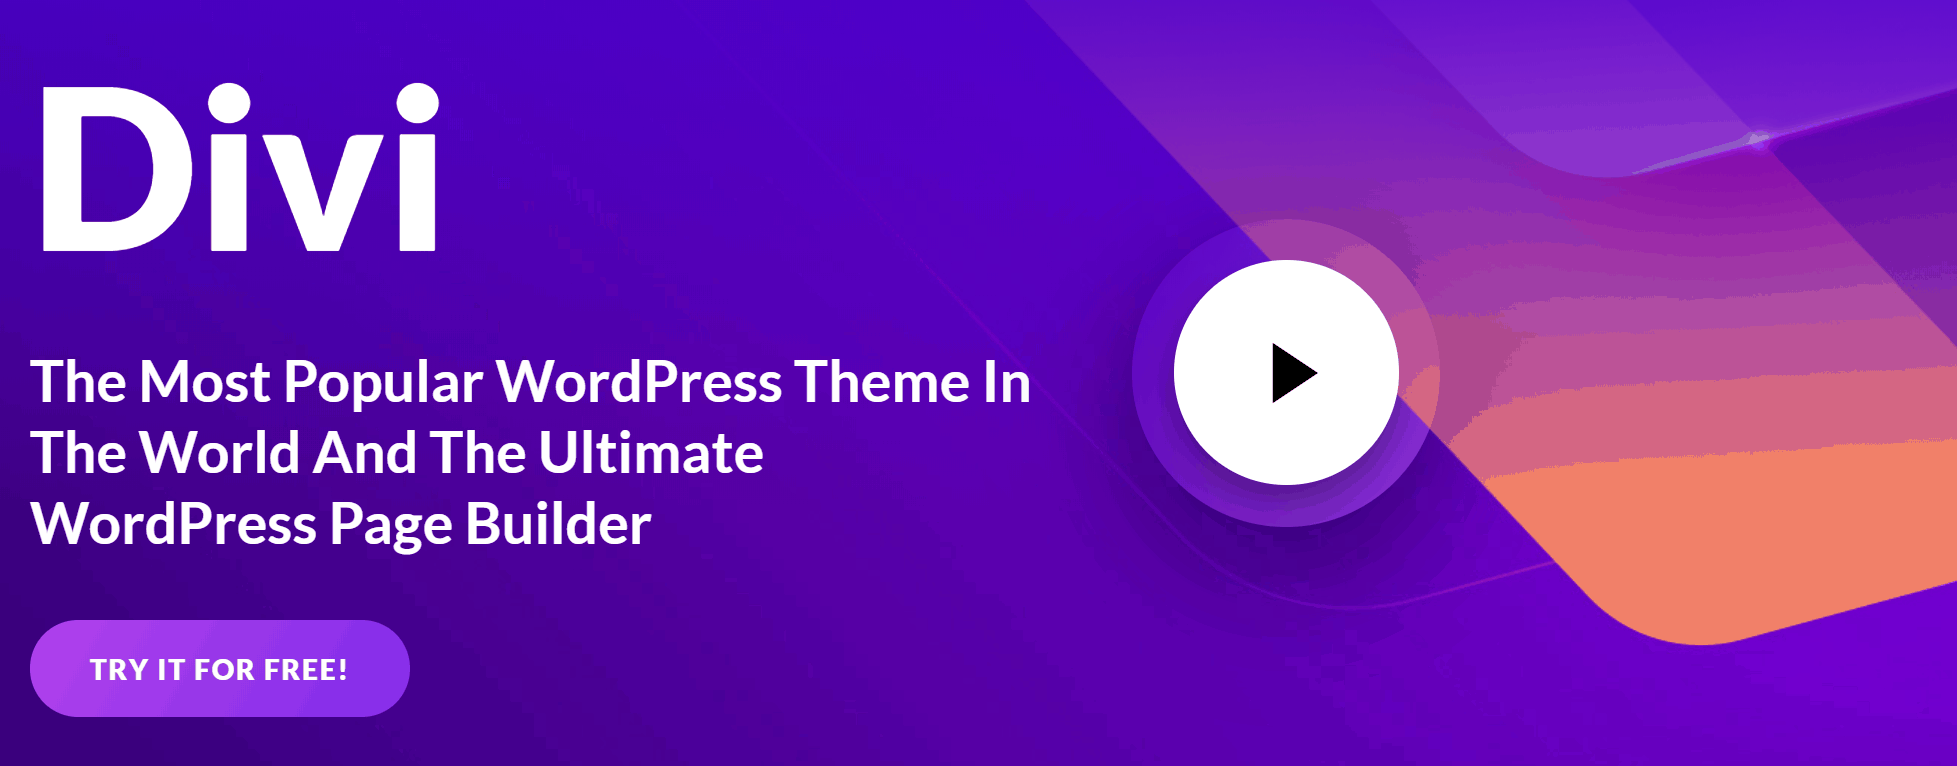 Divi WordPress Page Builder